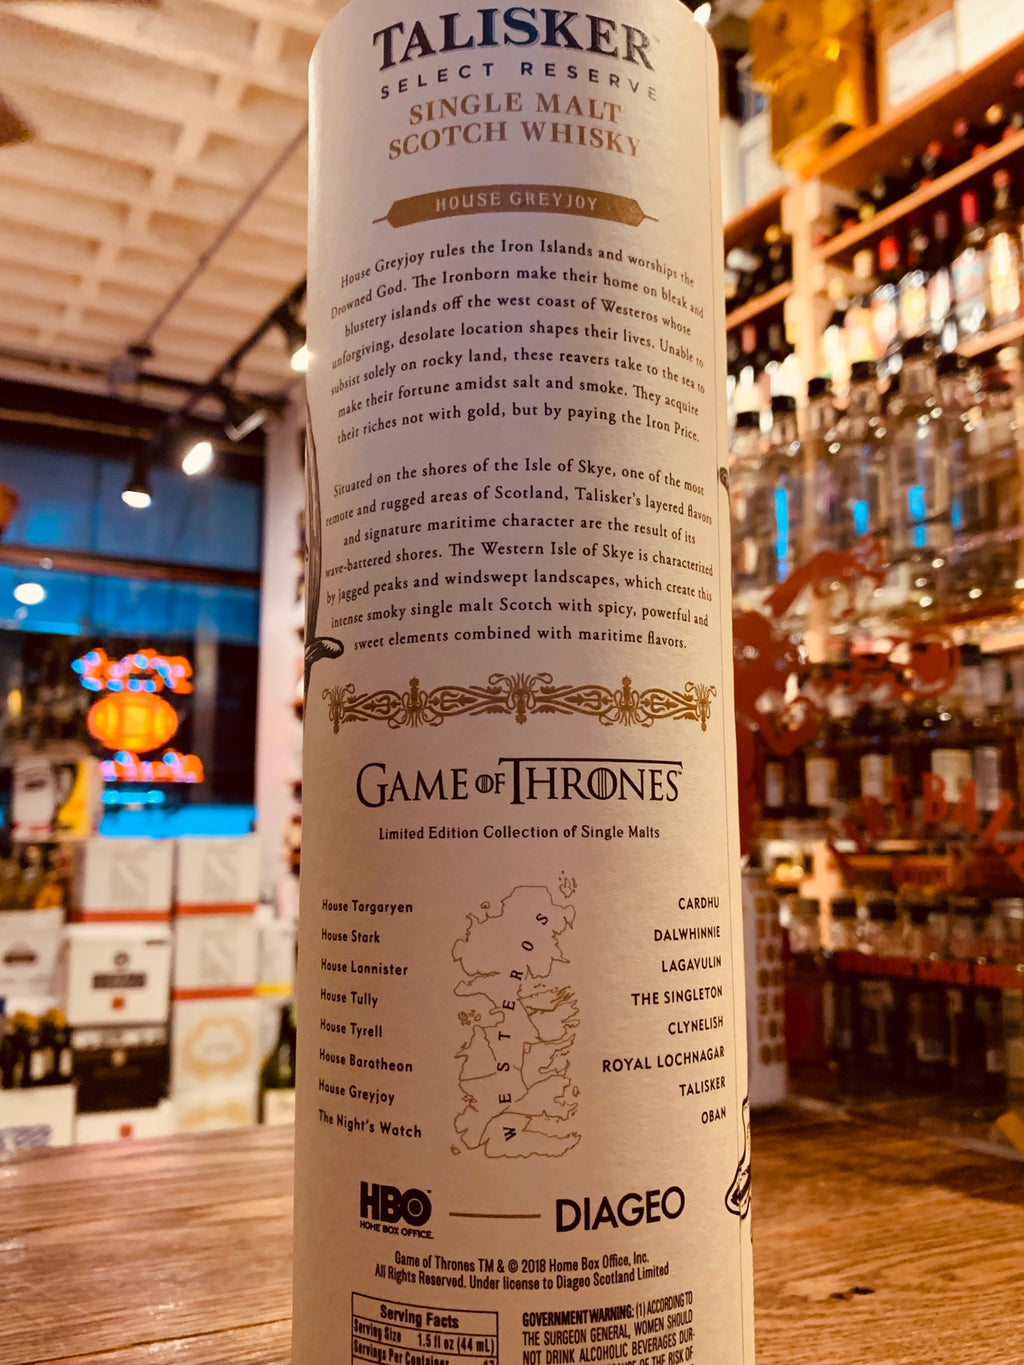 House Greyjoy Talisker Select Reserve 750mL